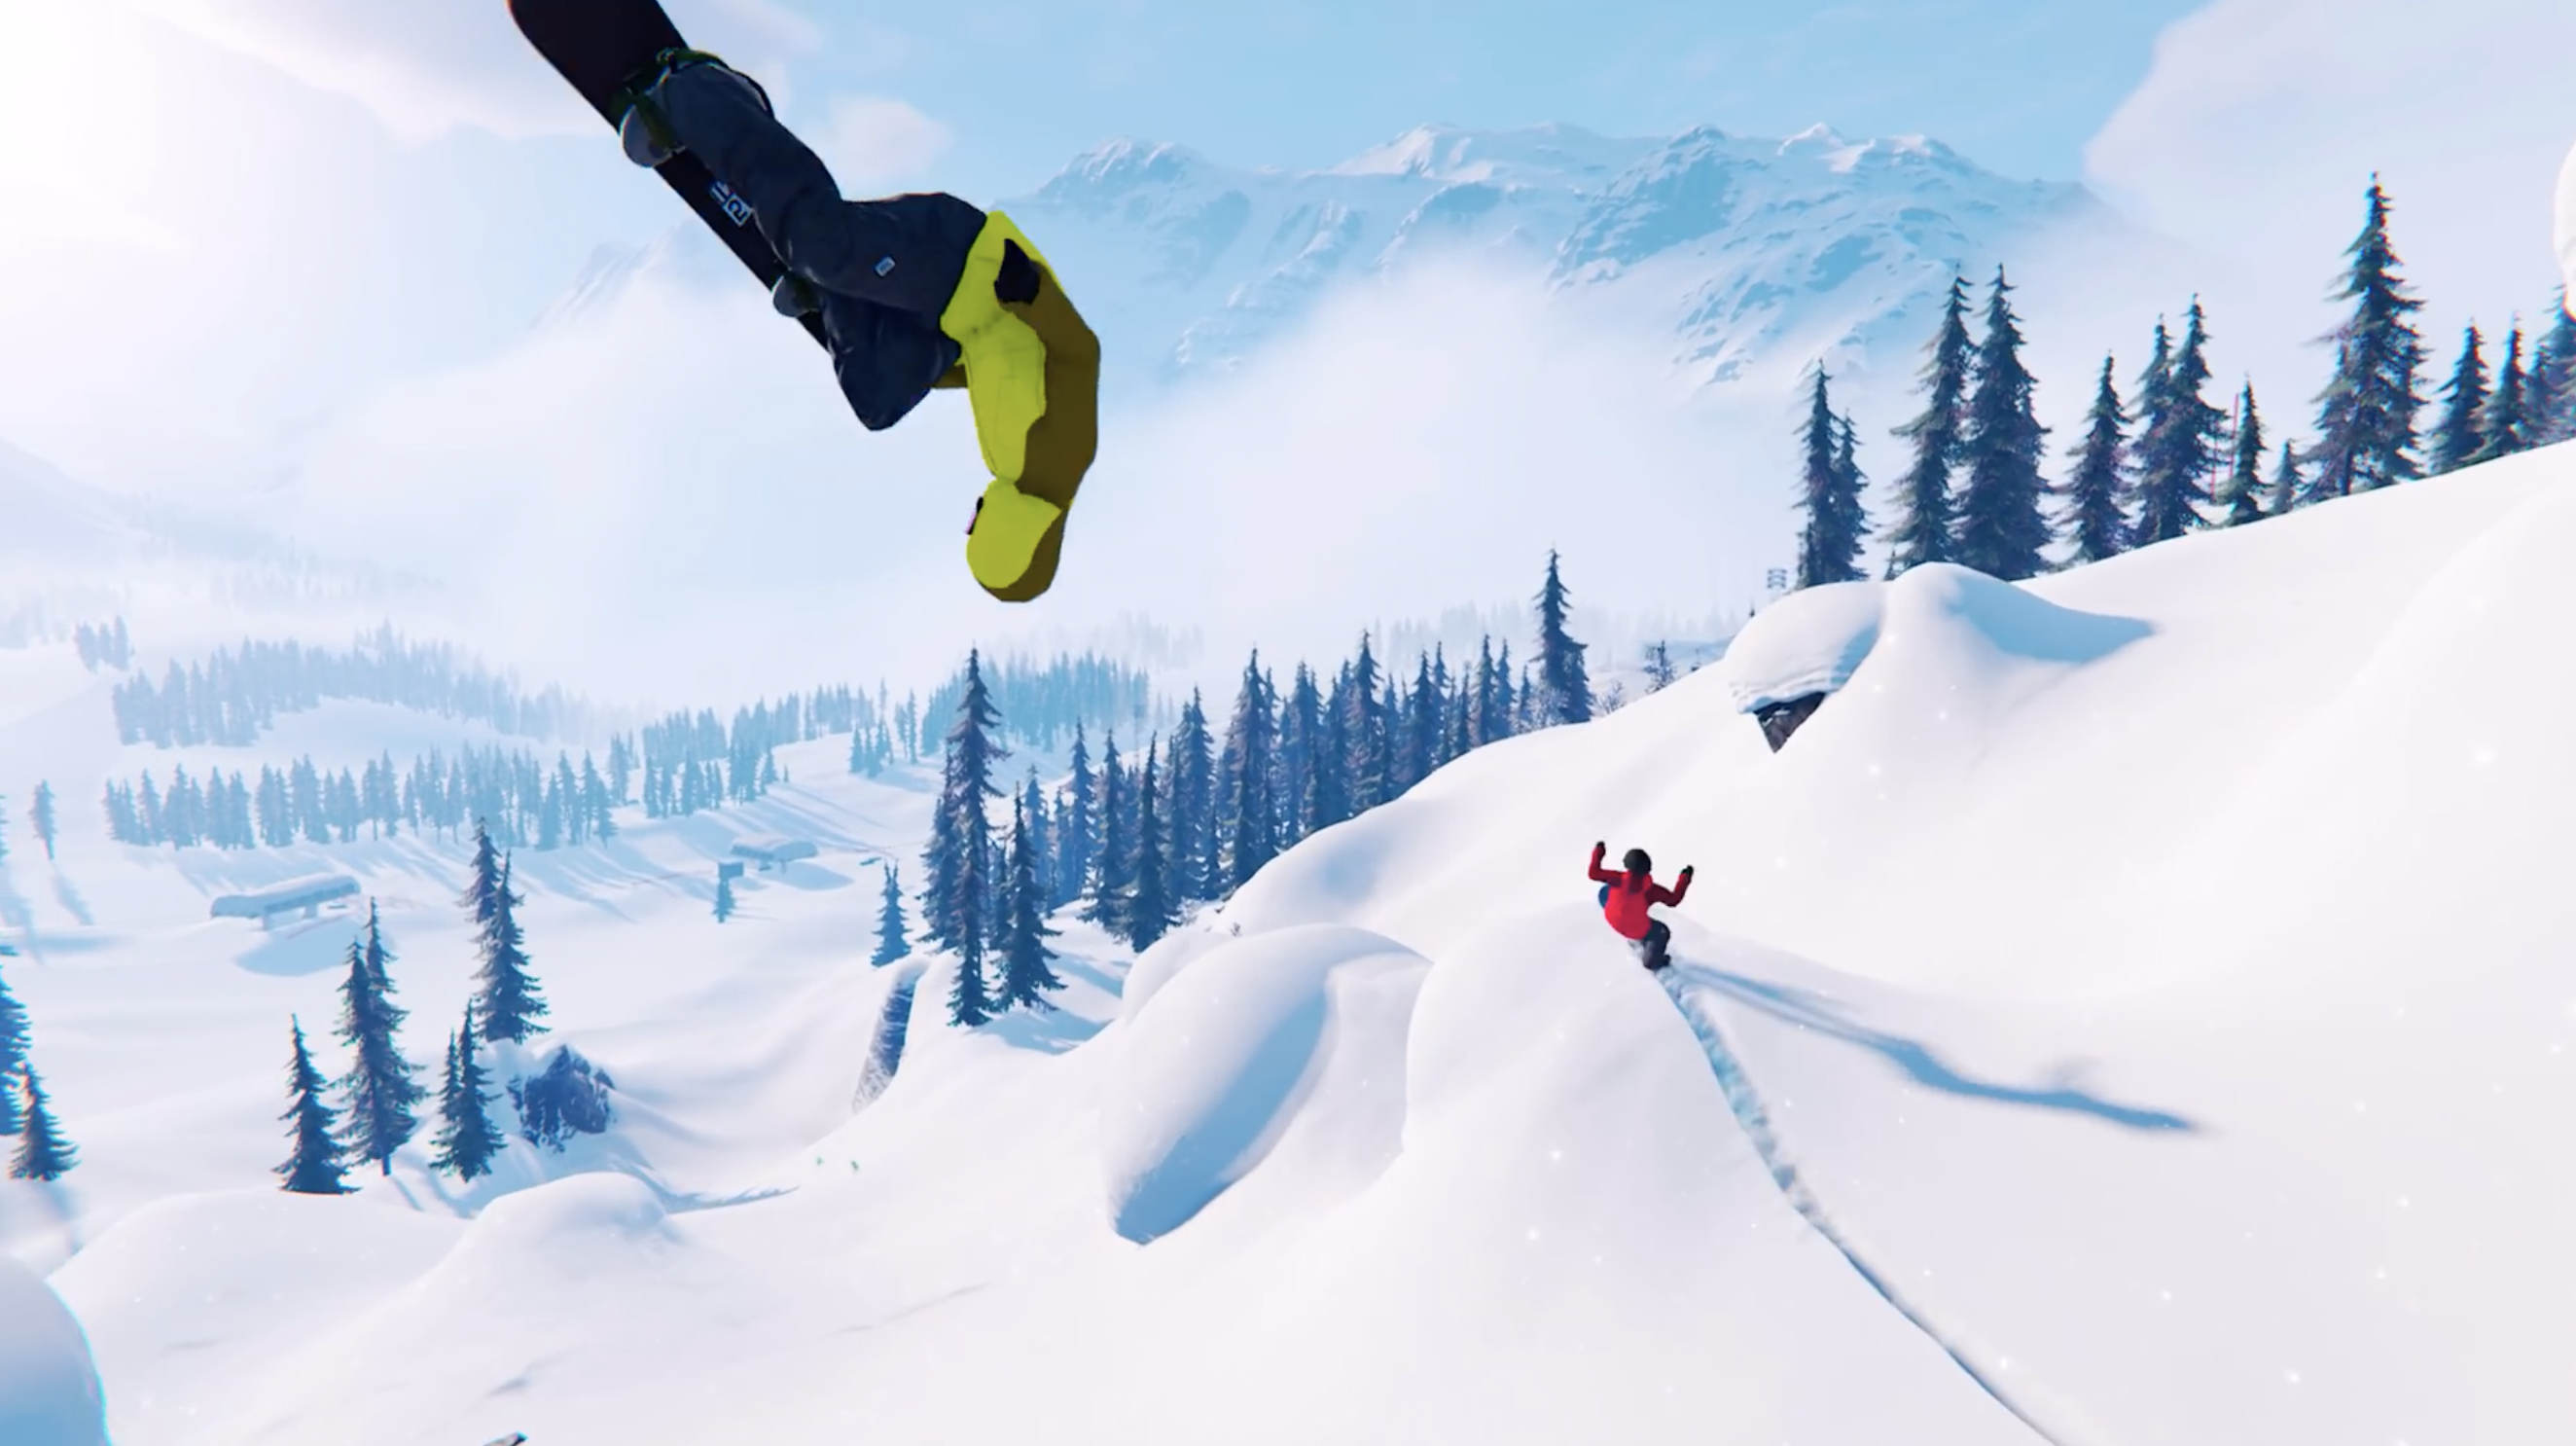 E3 2021: Shredders is Here to Get You Amped for Snowboarding Again